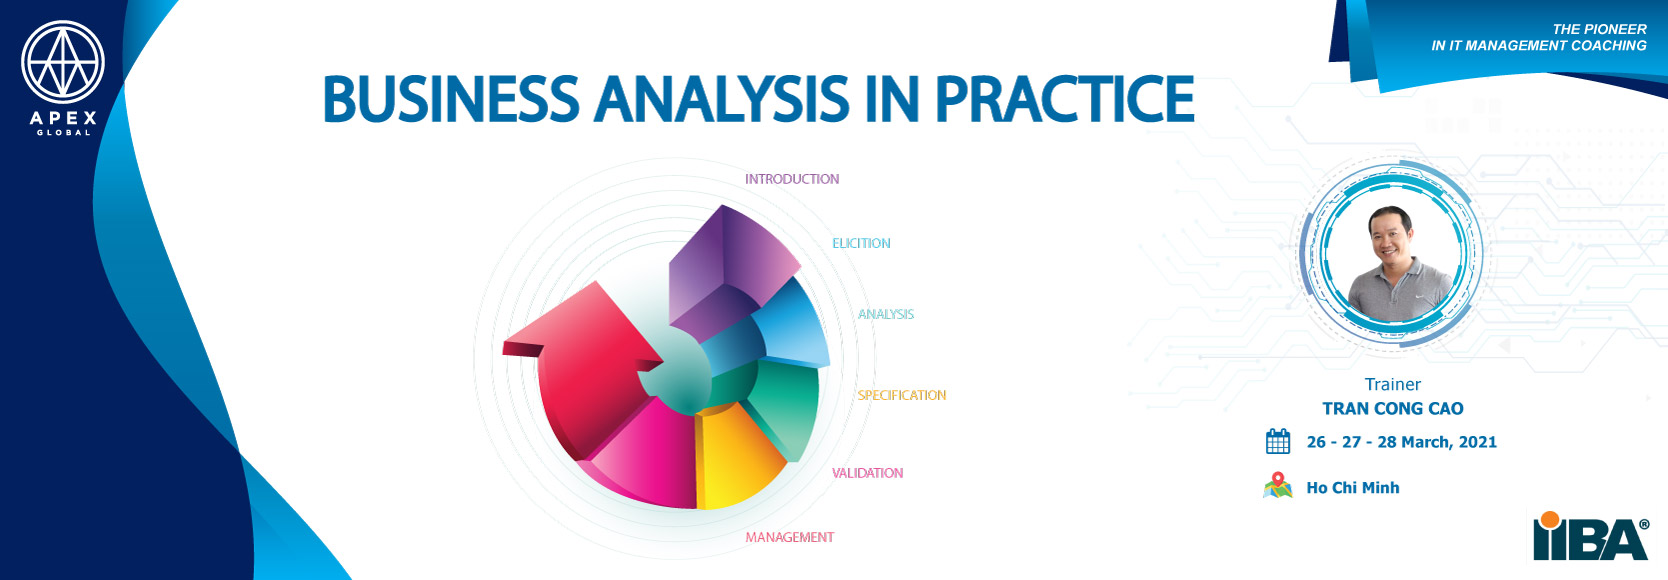 Businesss-Analysis-In-Practice-HCM